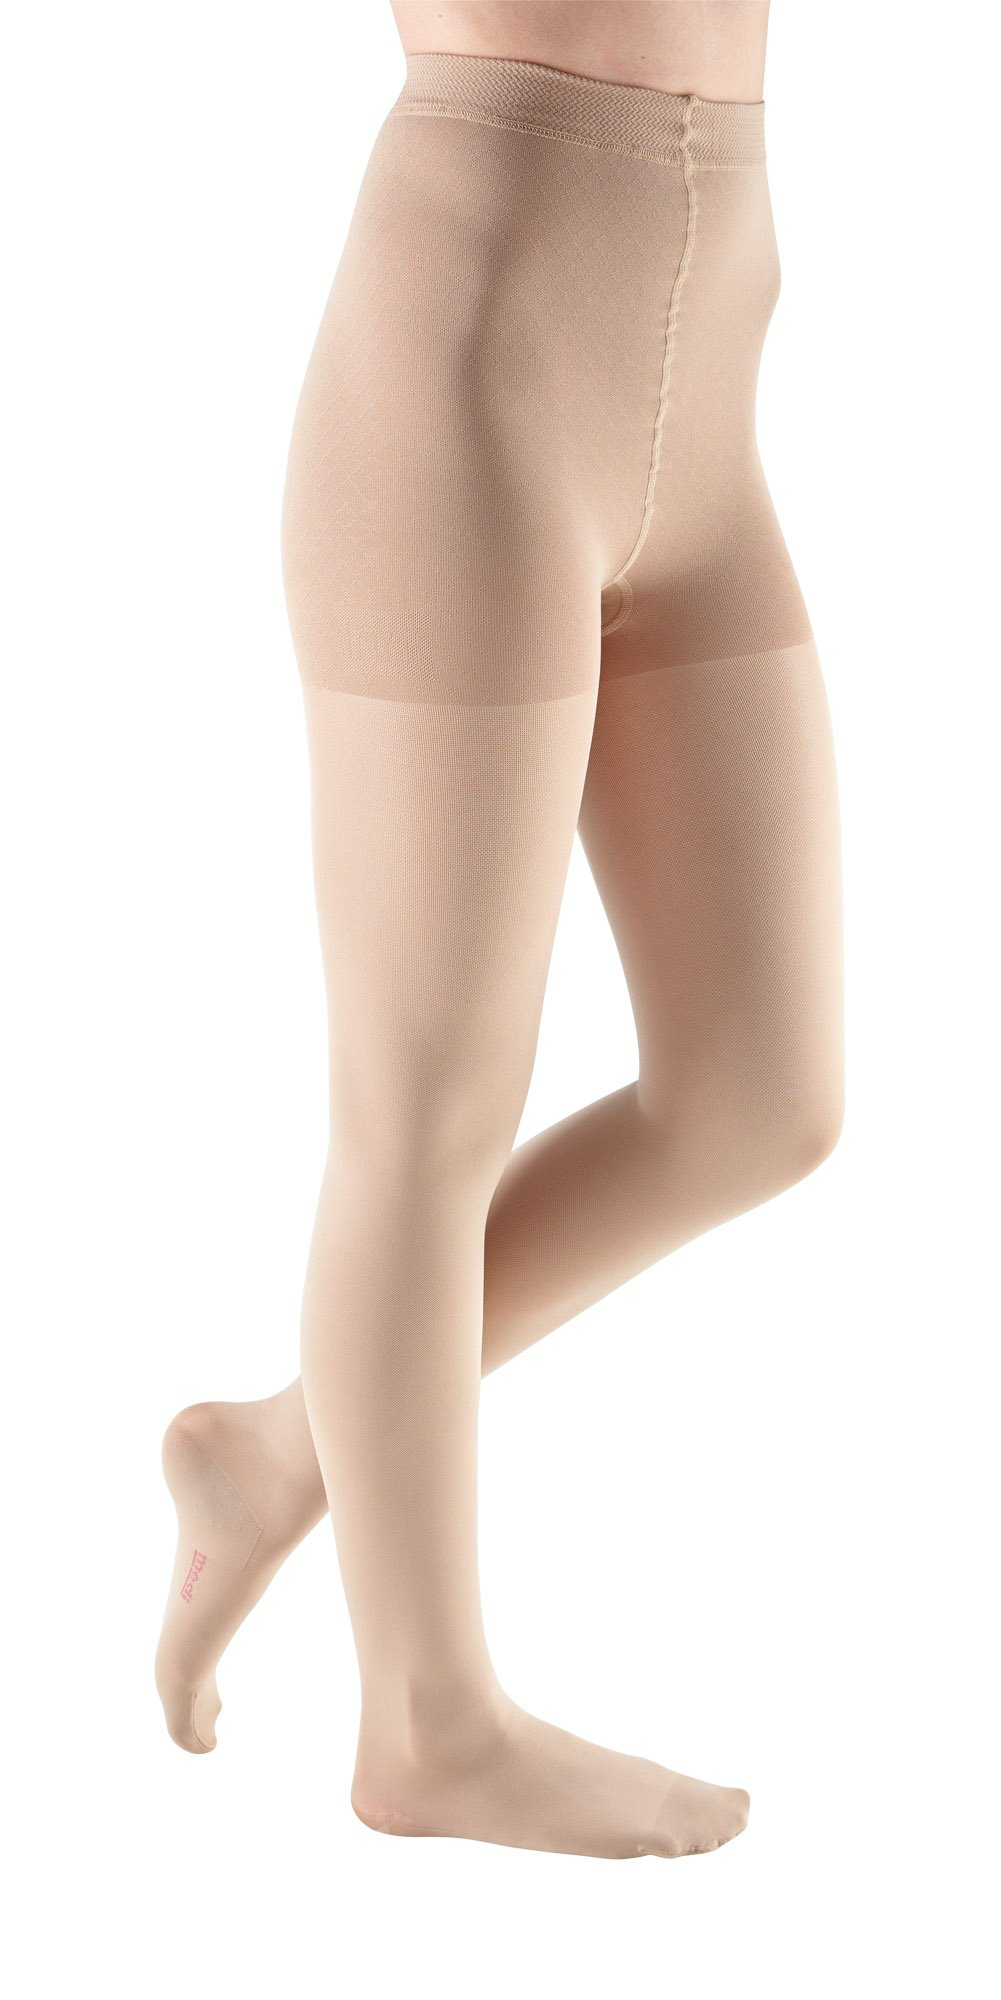 mediven Comfort, 20-30 mmHg, Closed Toe Compression Pantyhose